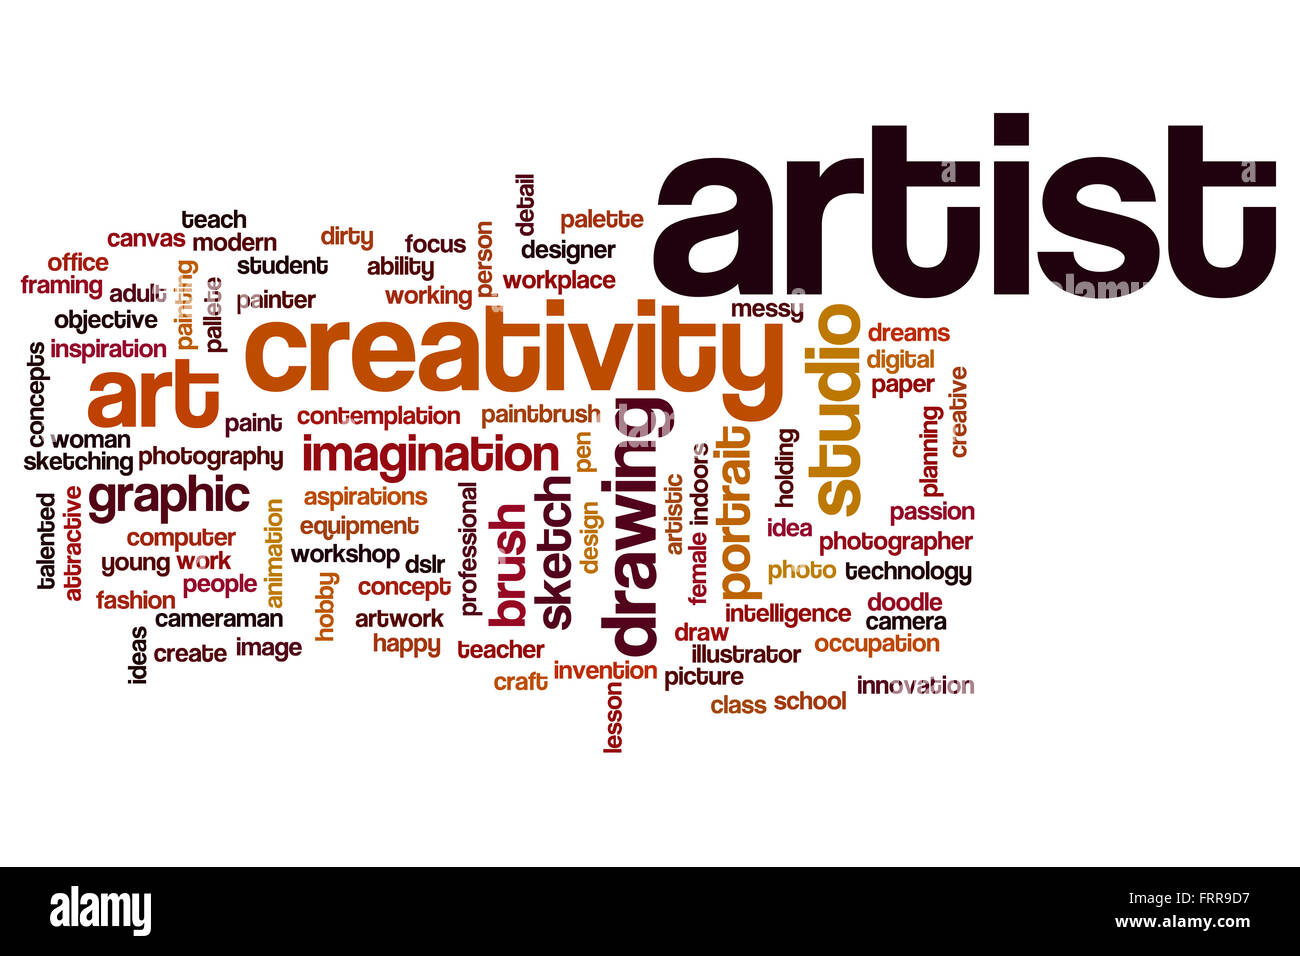 Artist Word Cloud Concept Stock Photo 100701251 Alamy